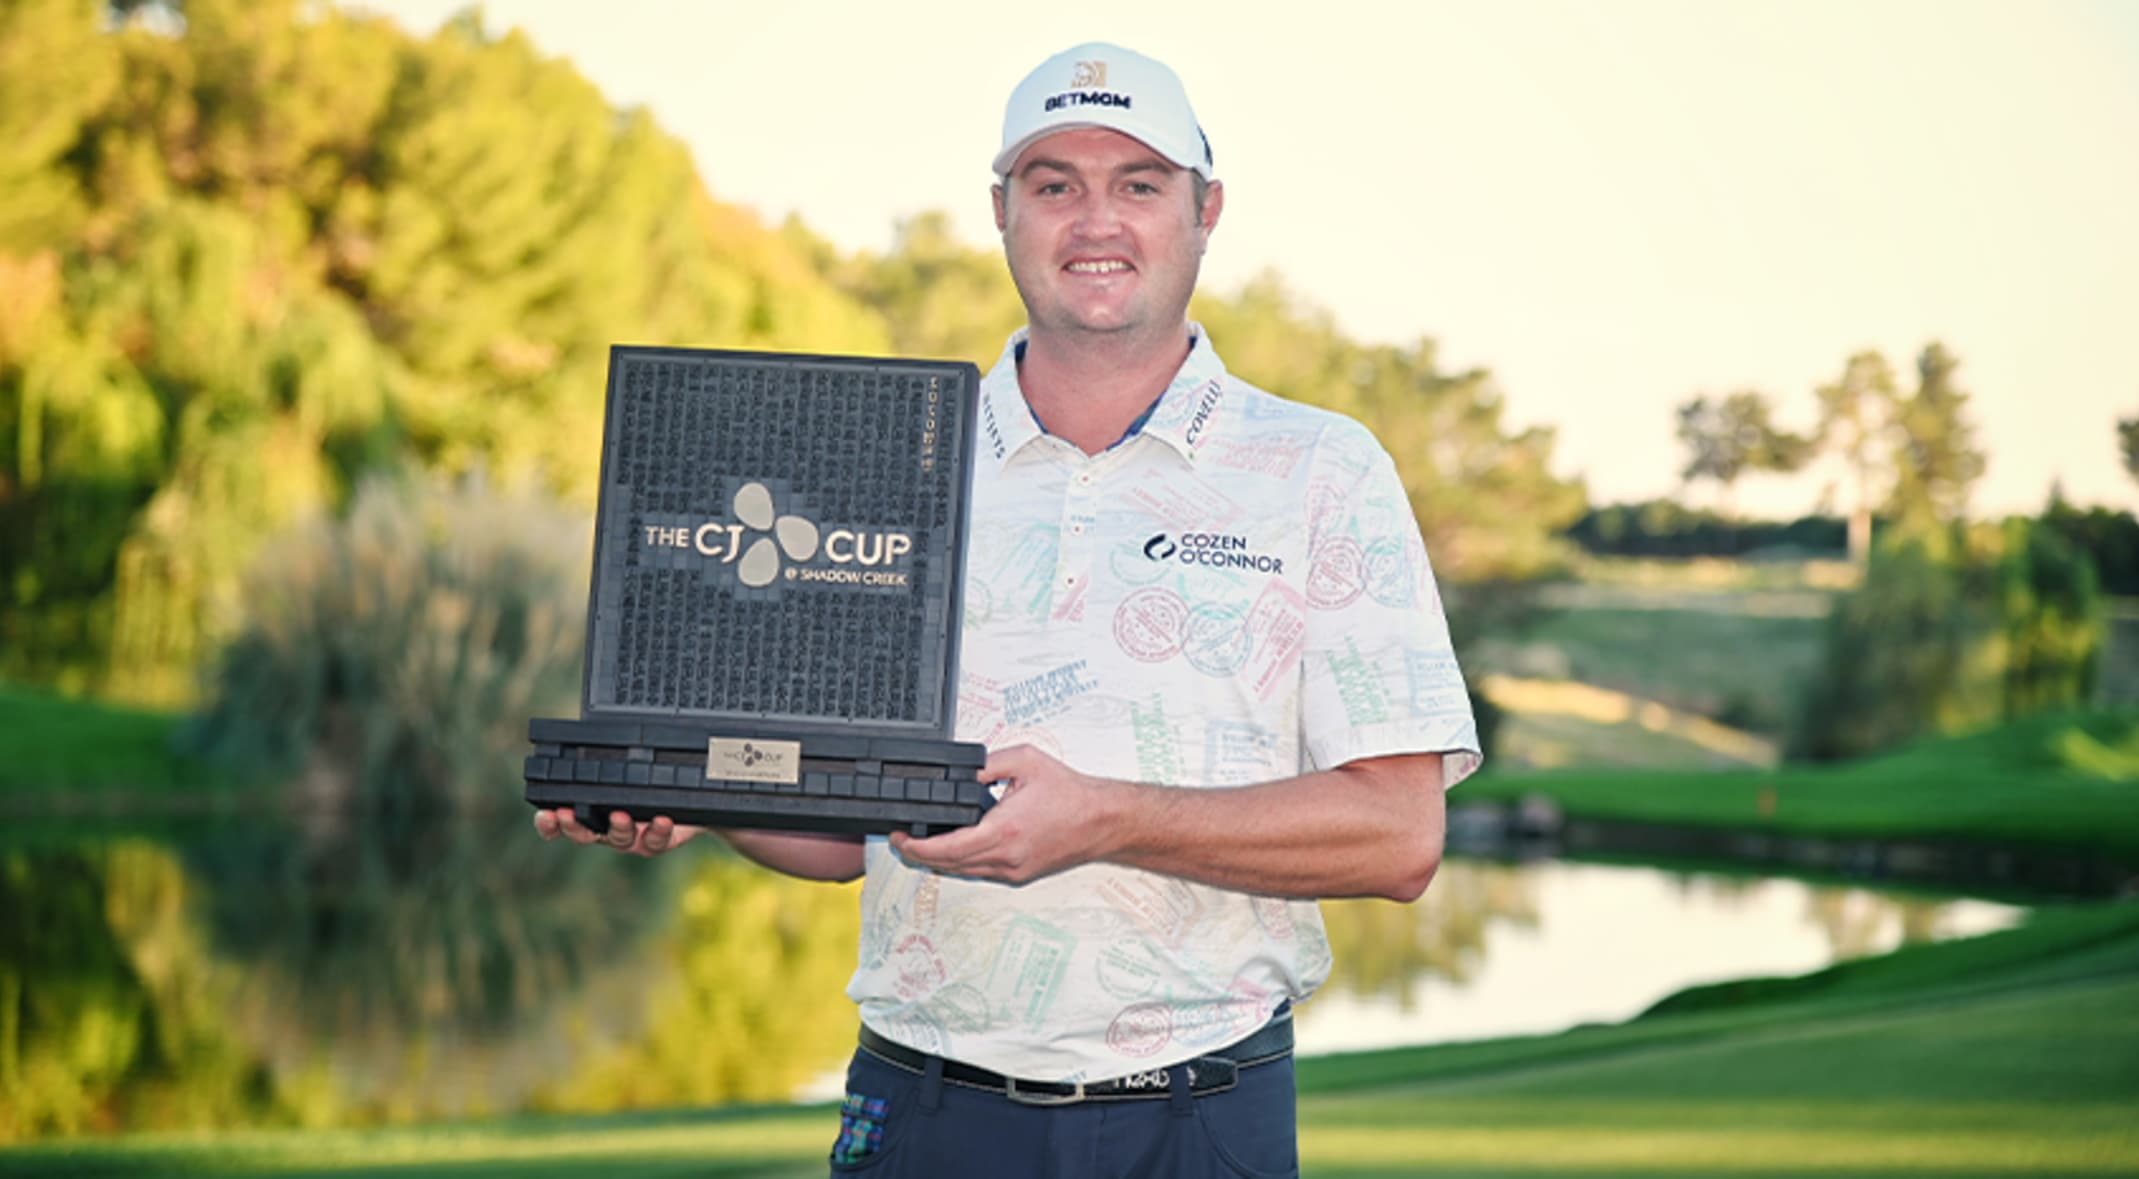 The First Look: THE CJ CUP @ SUMMIT